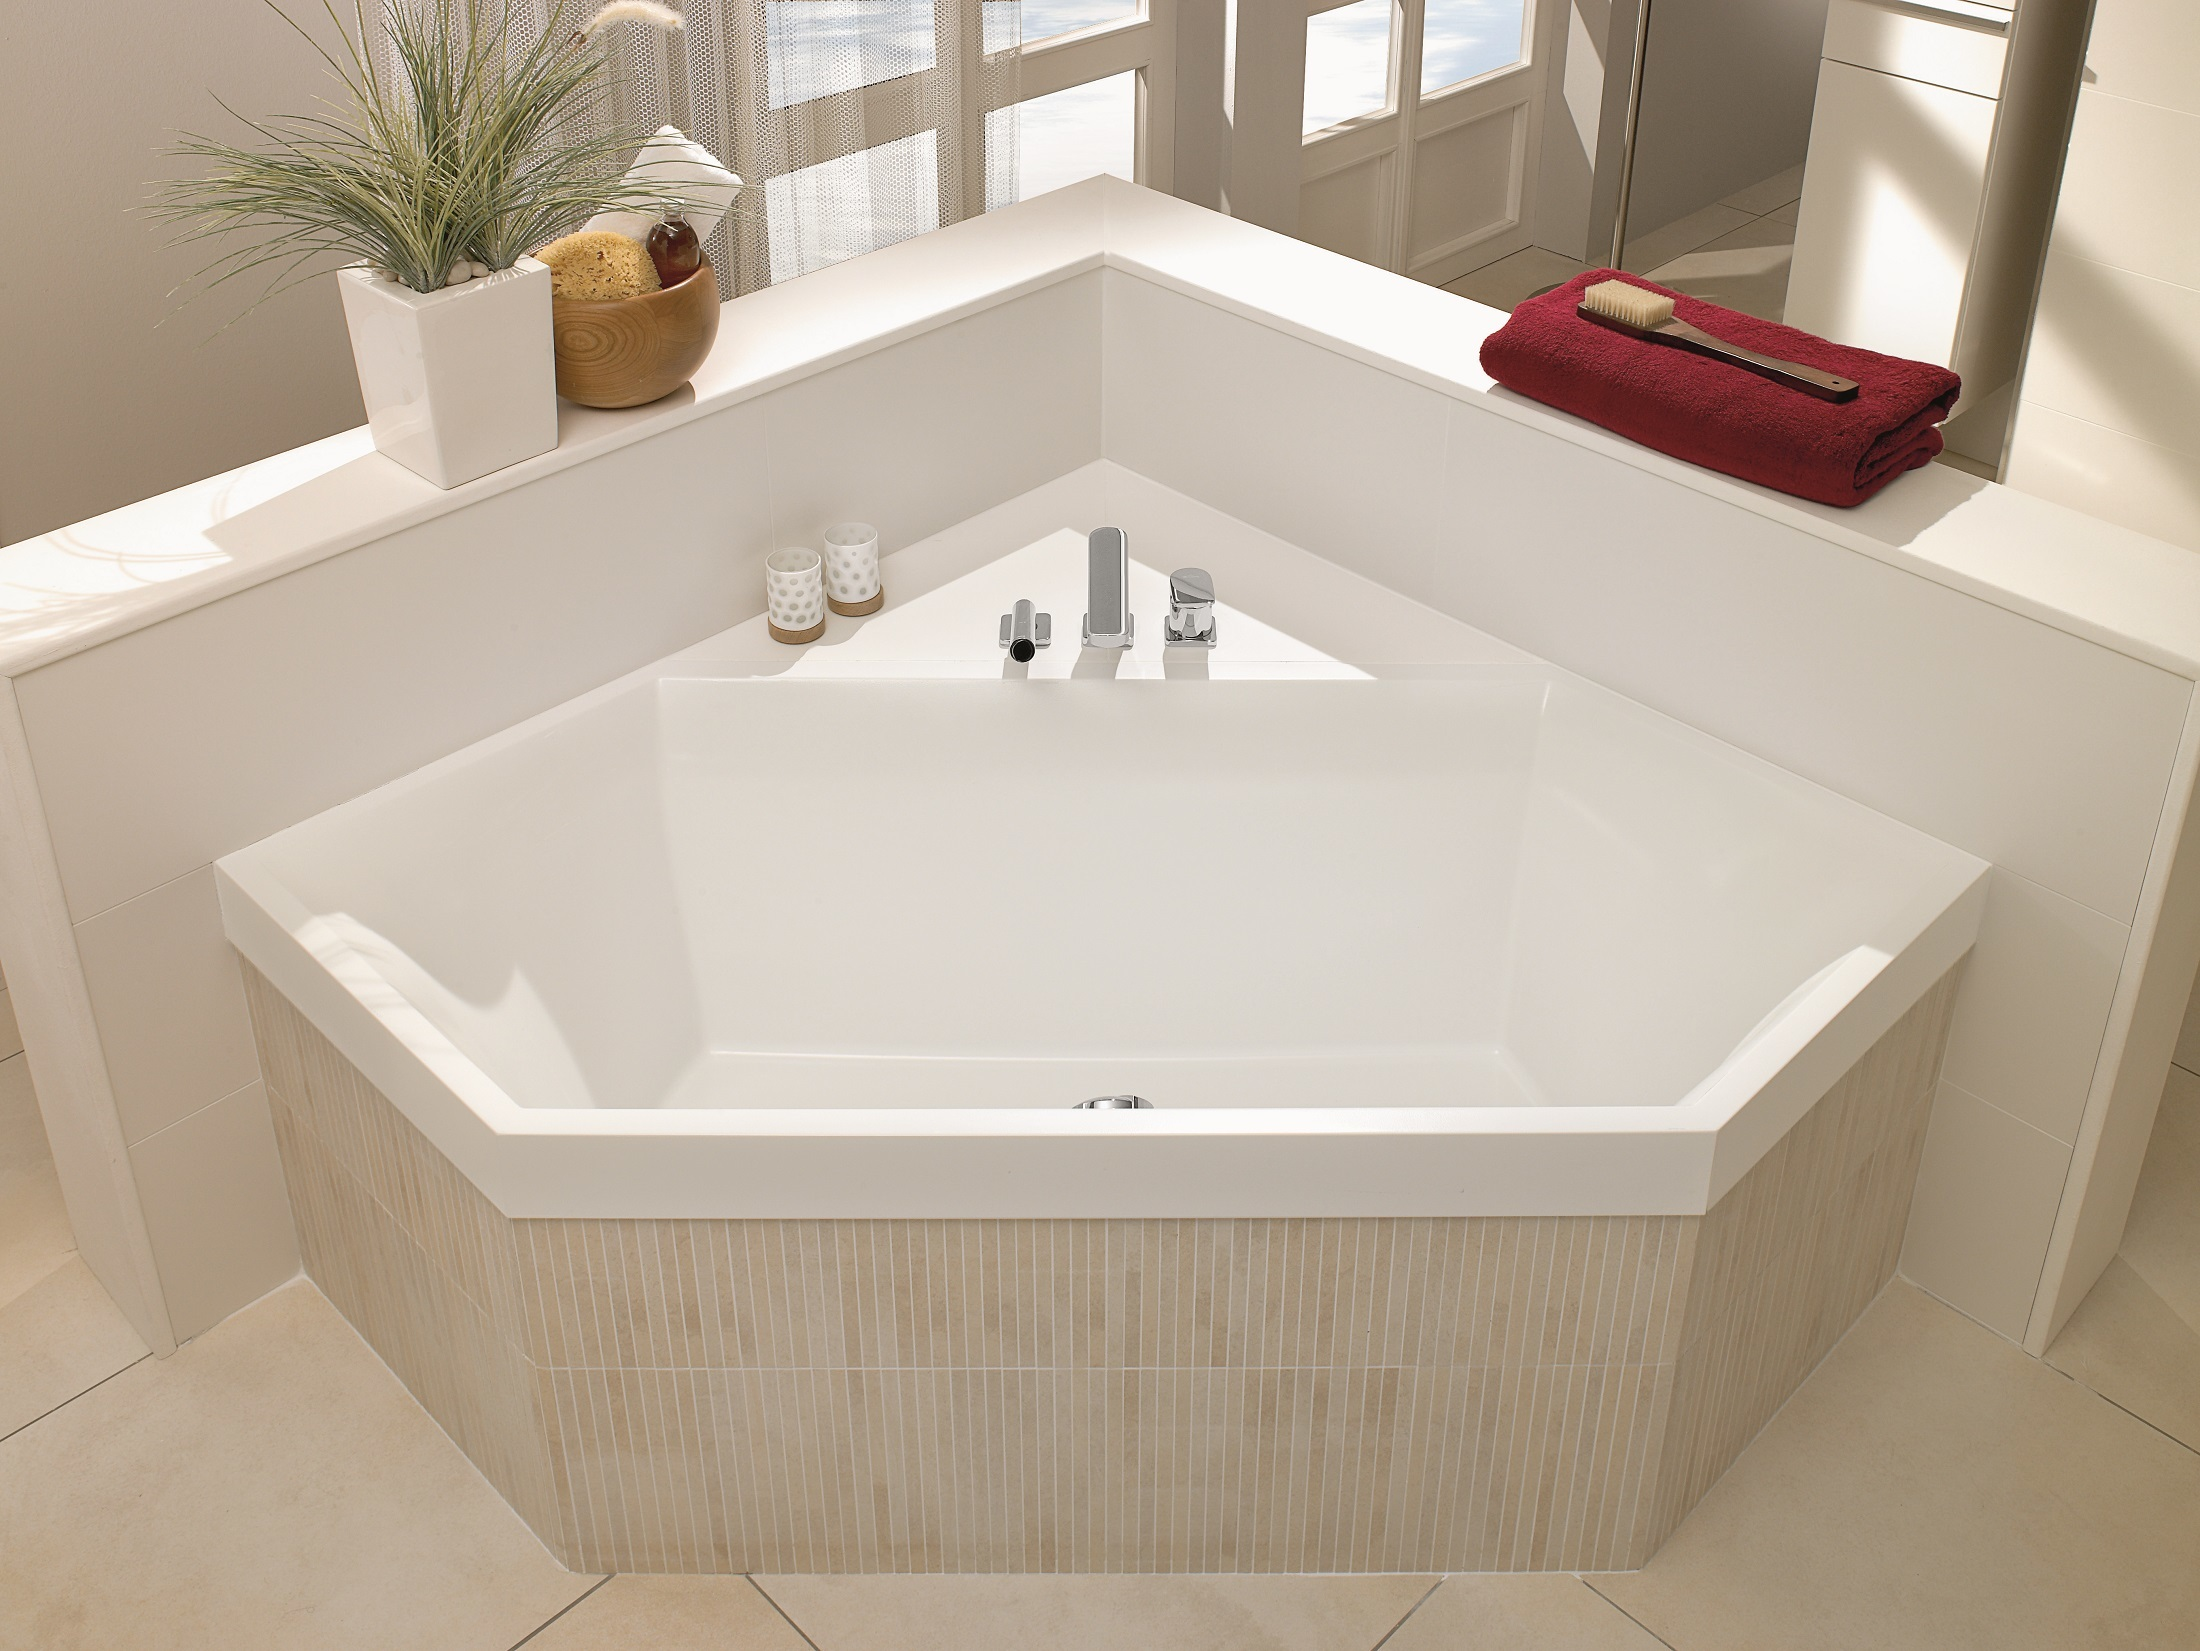 Badewanne Quaryl Badewanne Hexagonal Squaro Von Villeroy And Boch Bad